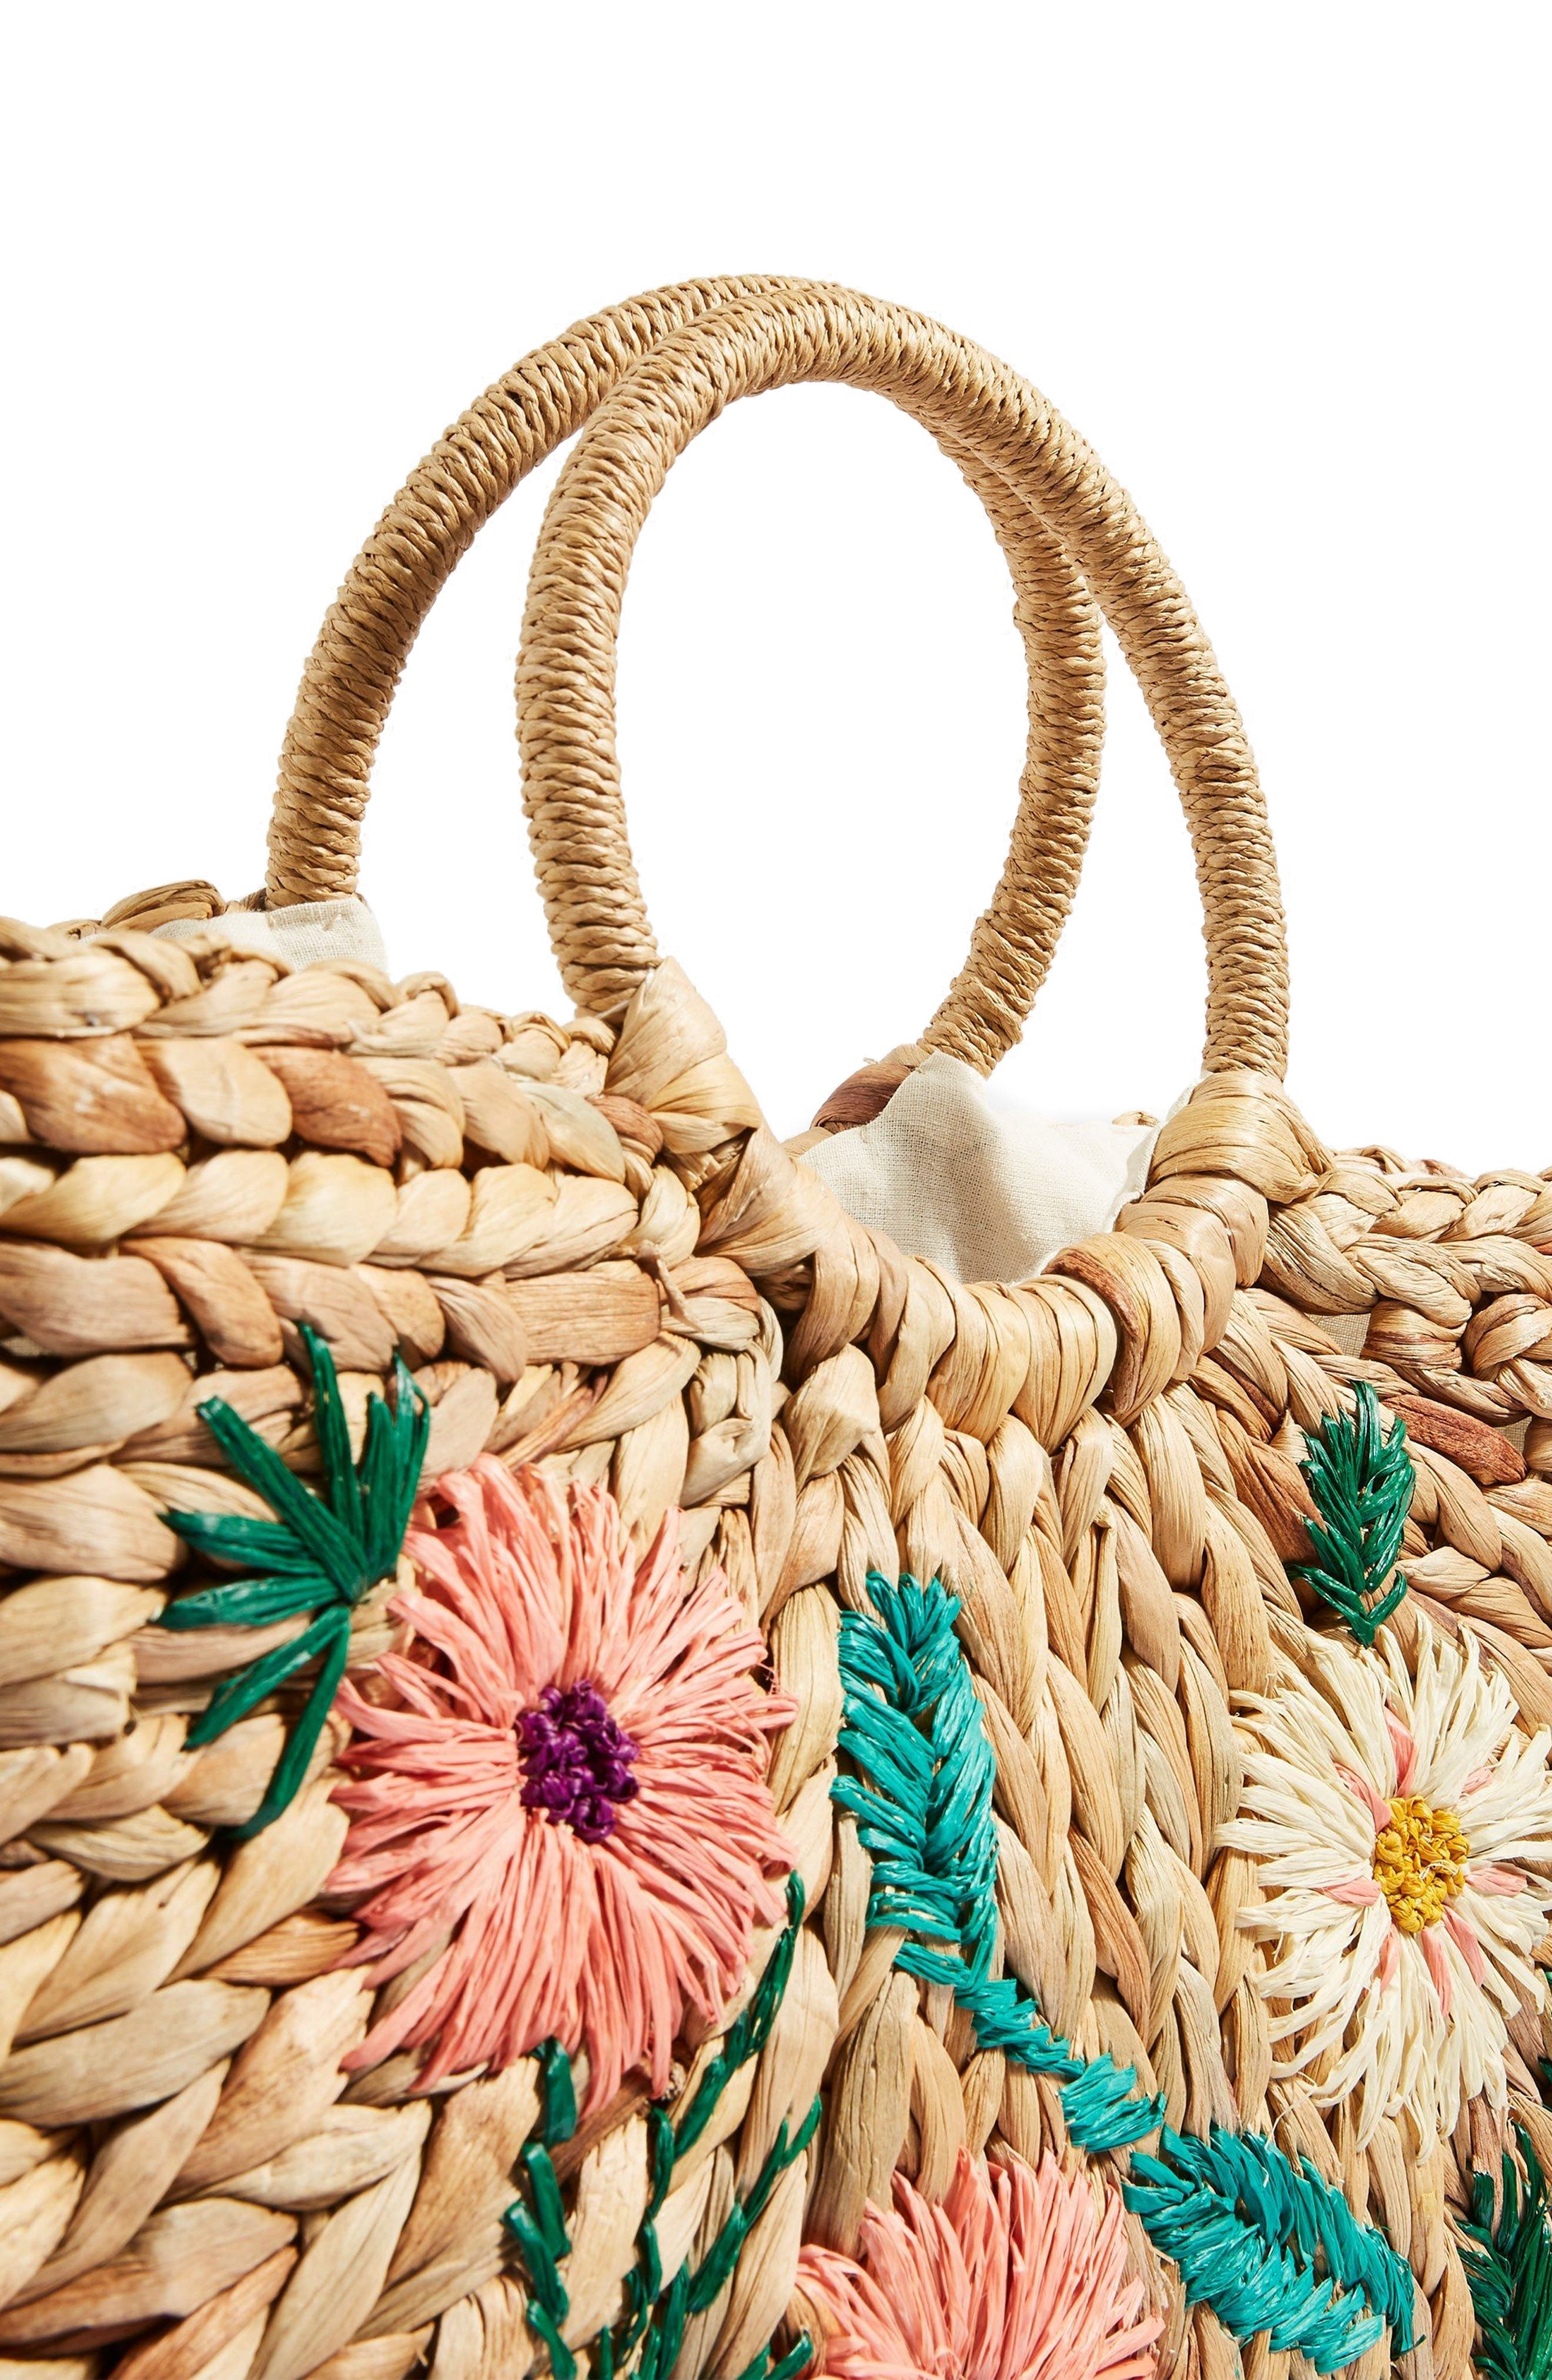 Beverly Floral Embroidered Straw Tote Bag,                             Alternate thumbnail 4, color,                             250